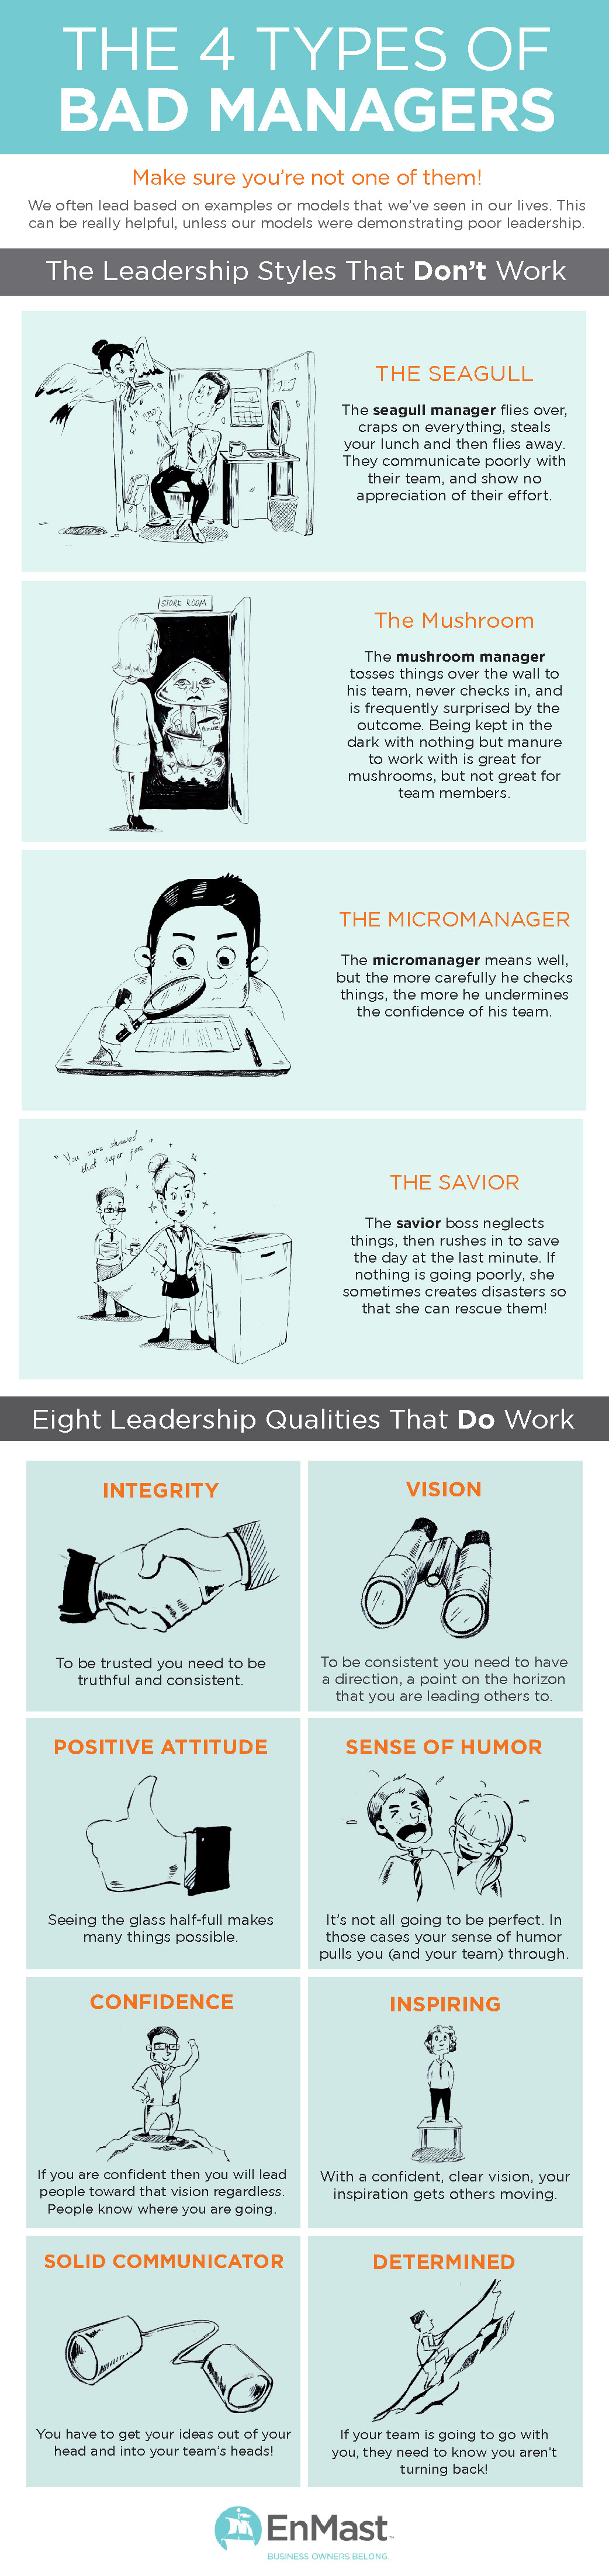 Infographic: The 4 Types of Bad Managers